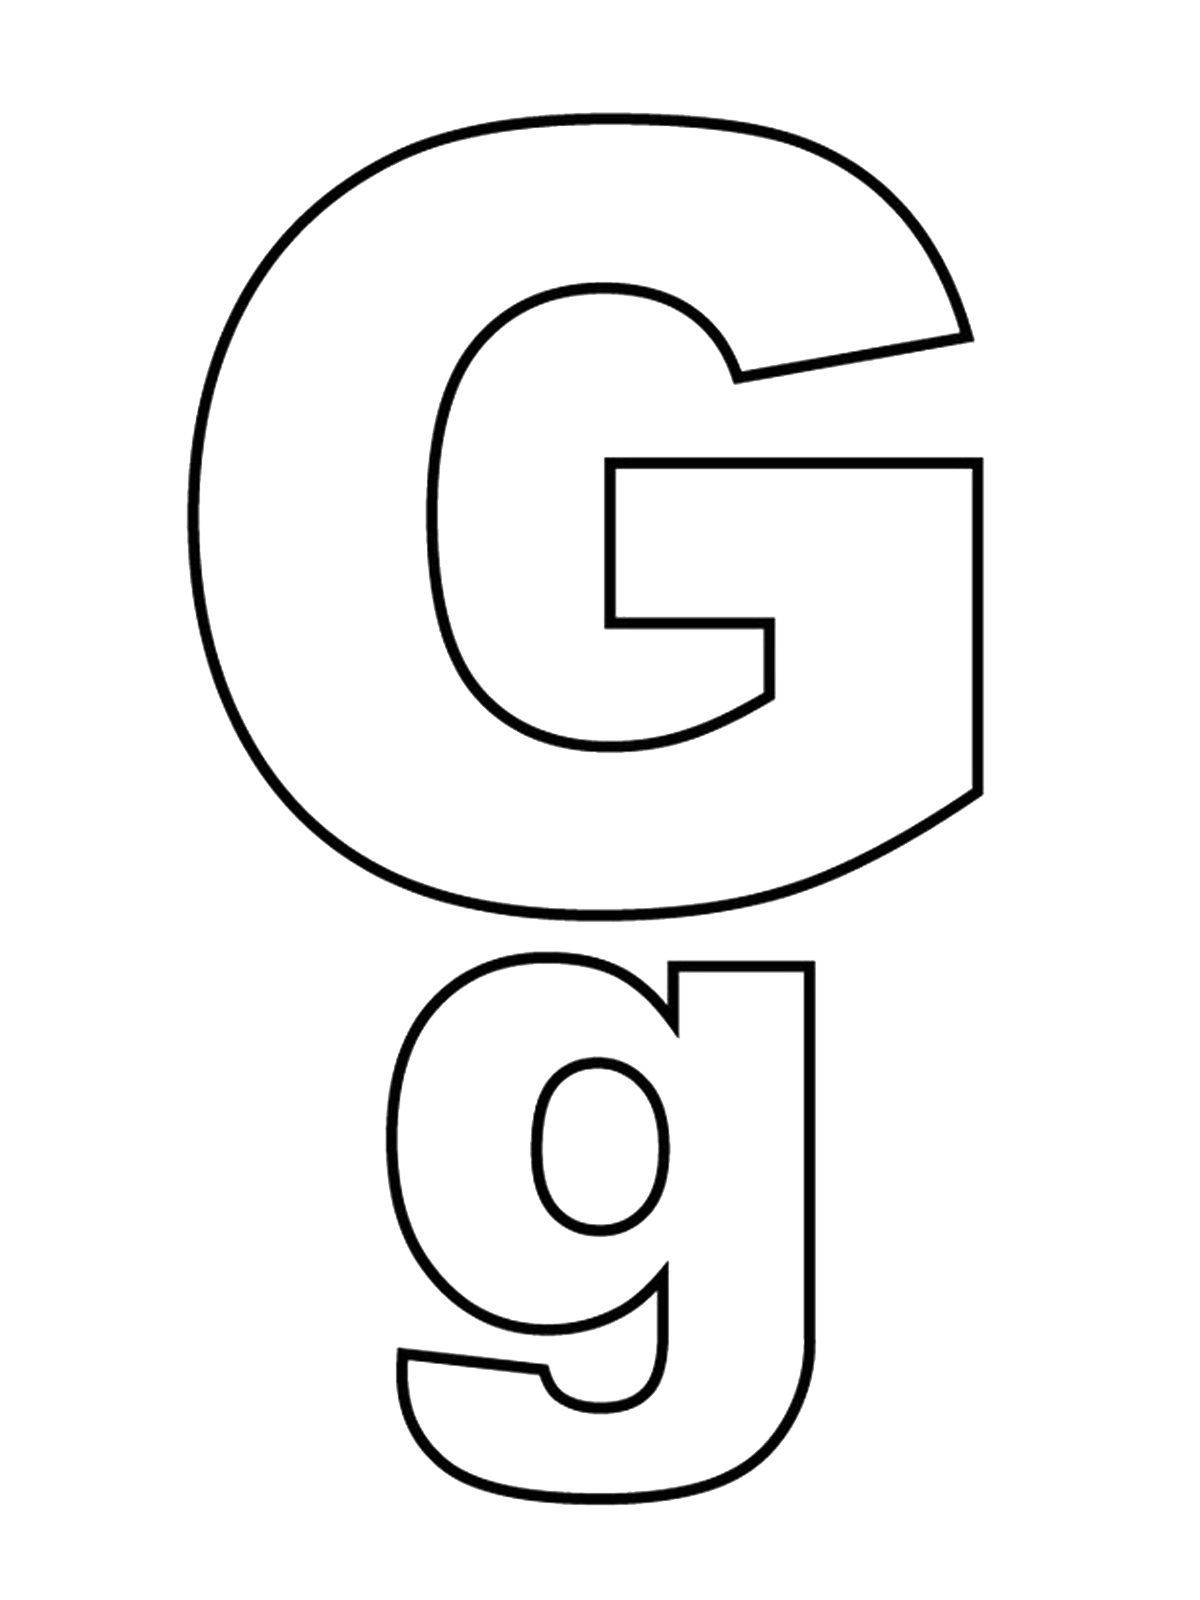 Letter G Capital Letters And Lowercase in addition Index 2 together with Lettera K Alfabeto Da Colorare besides Pfb as well Pfk. on coloring pages for letter i